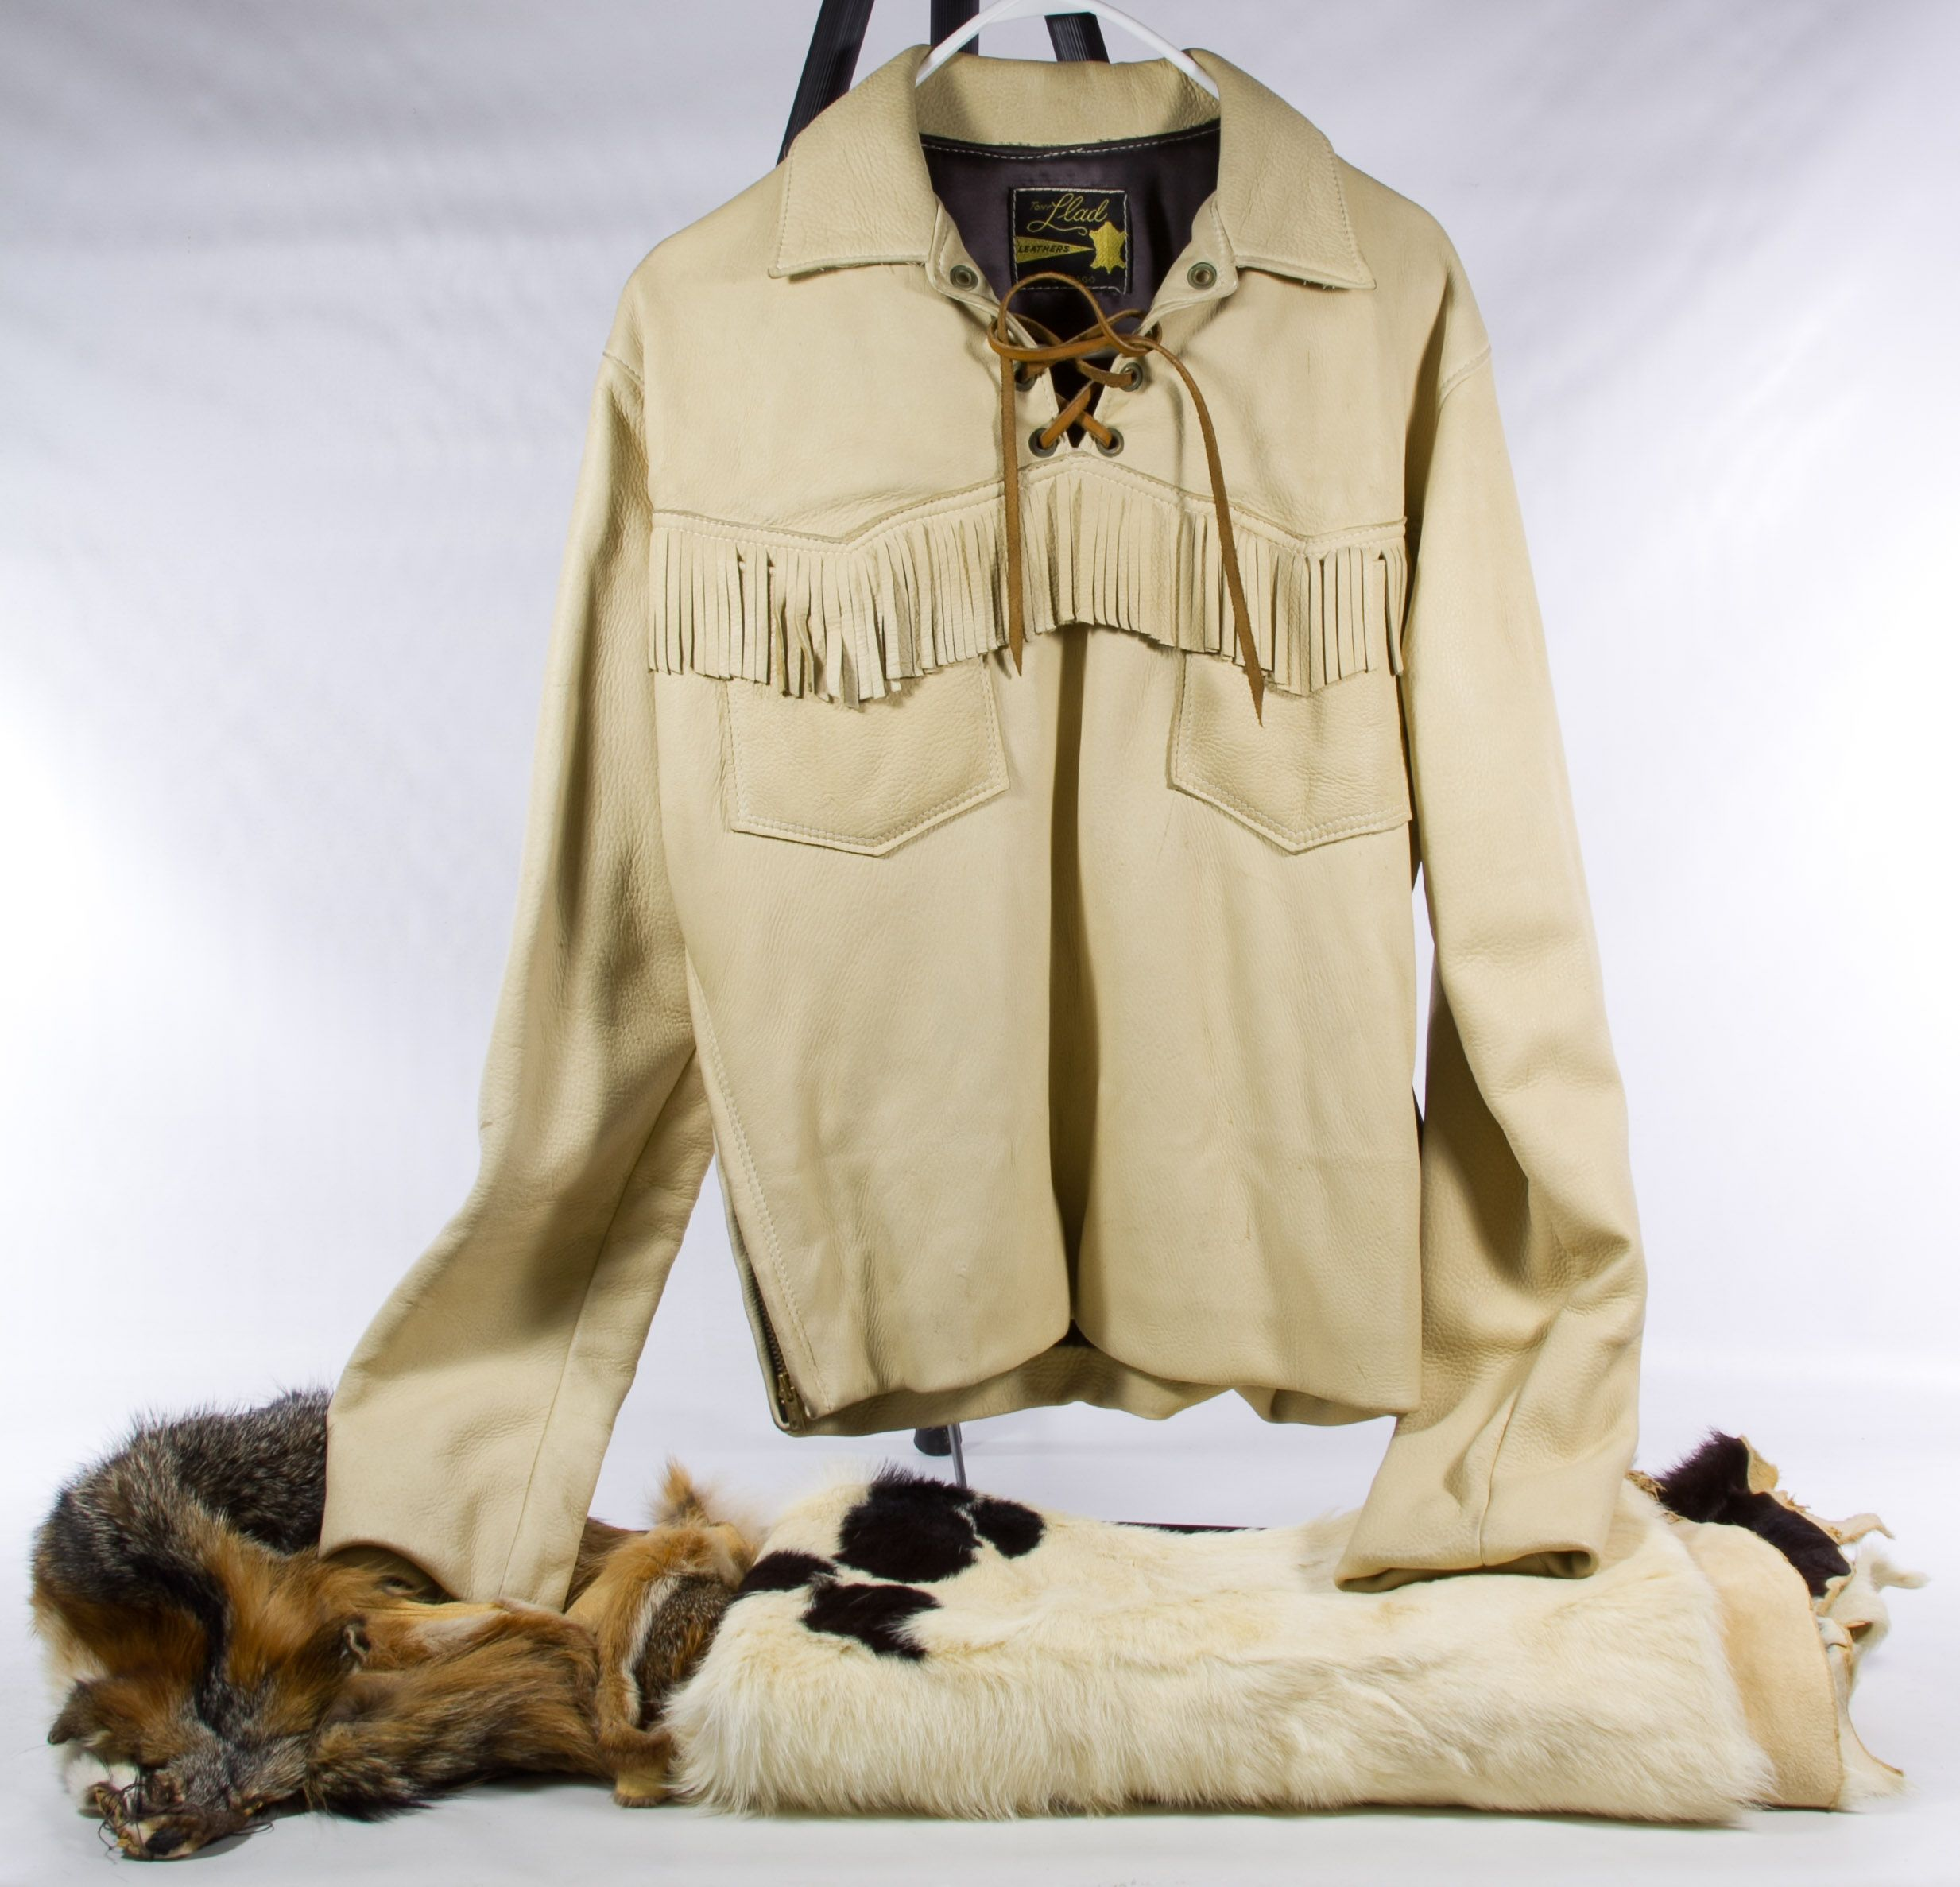 Lot 488: Buck Skin Jacket and Fur Pelt Assortment; Including a Tony Llad fringed and zippered buckskin shirt jacket, a small cow hide and a fox hide